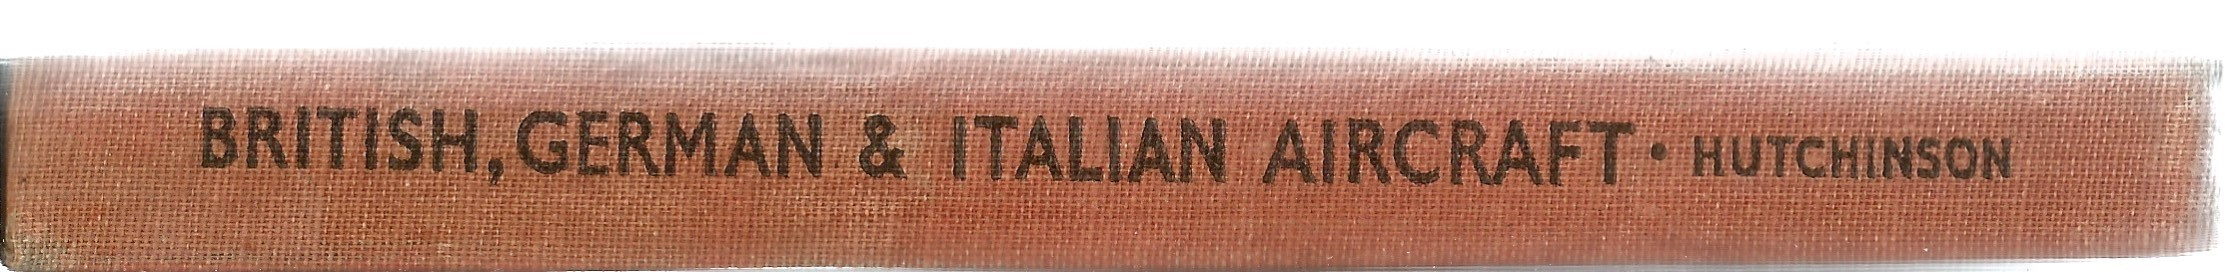 British, German and Italian Aircraft By Hutchinson. A WW2 hardback book, showing signs of age. Two